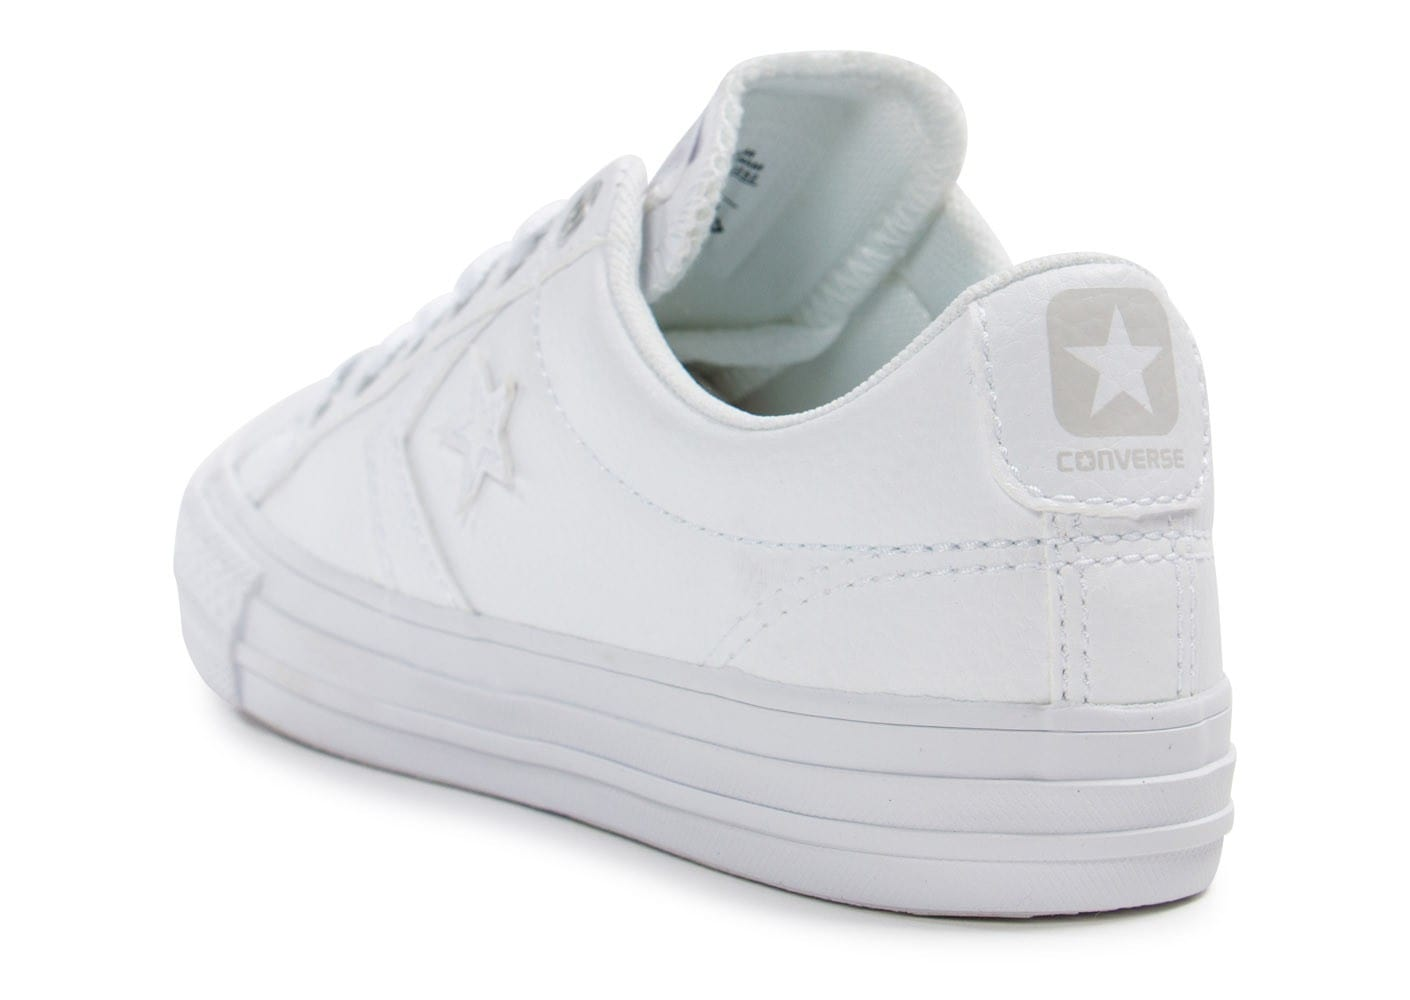 Toutes Star blanche Enfant Chaussures Converse Player Cuir les nYaxHn4w